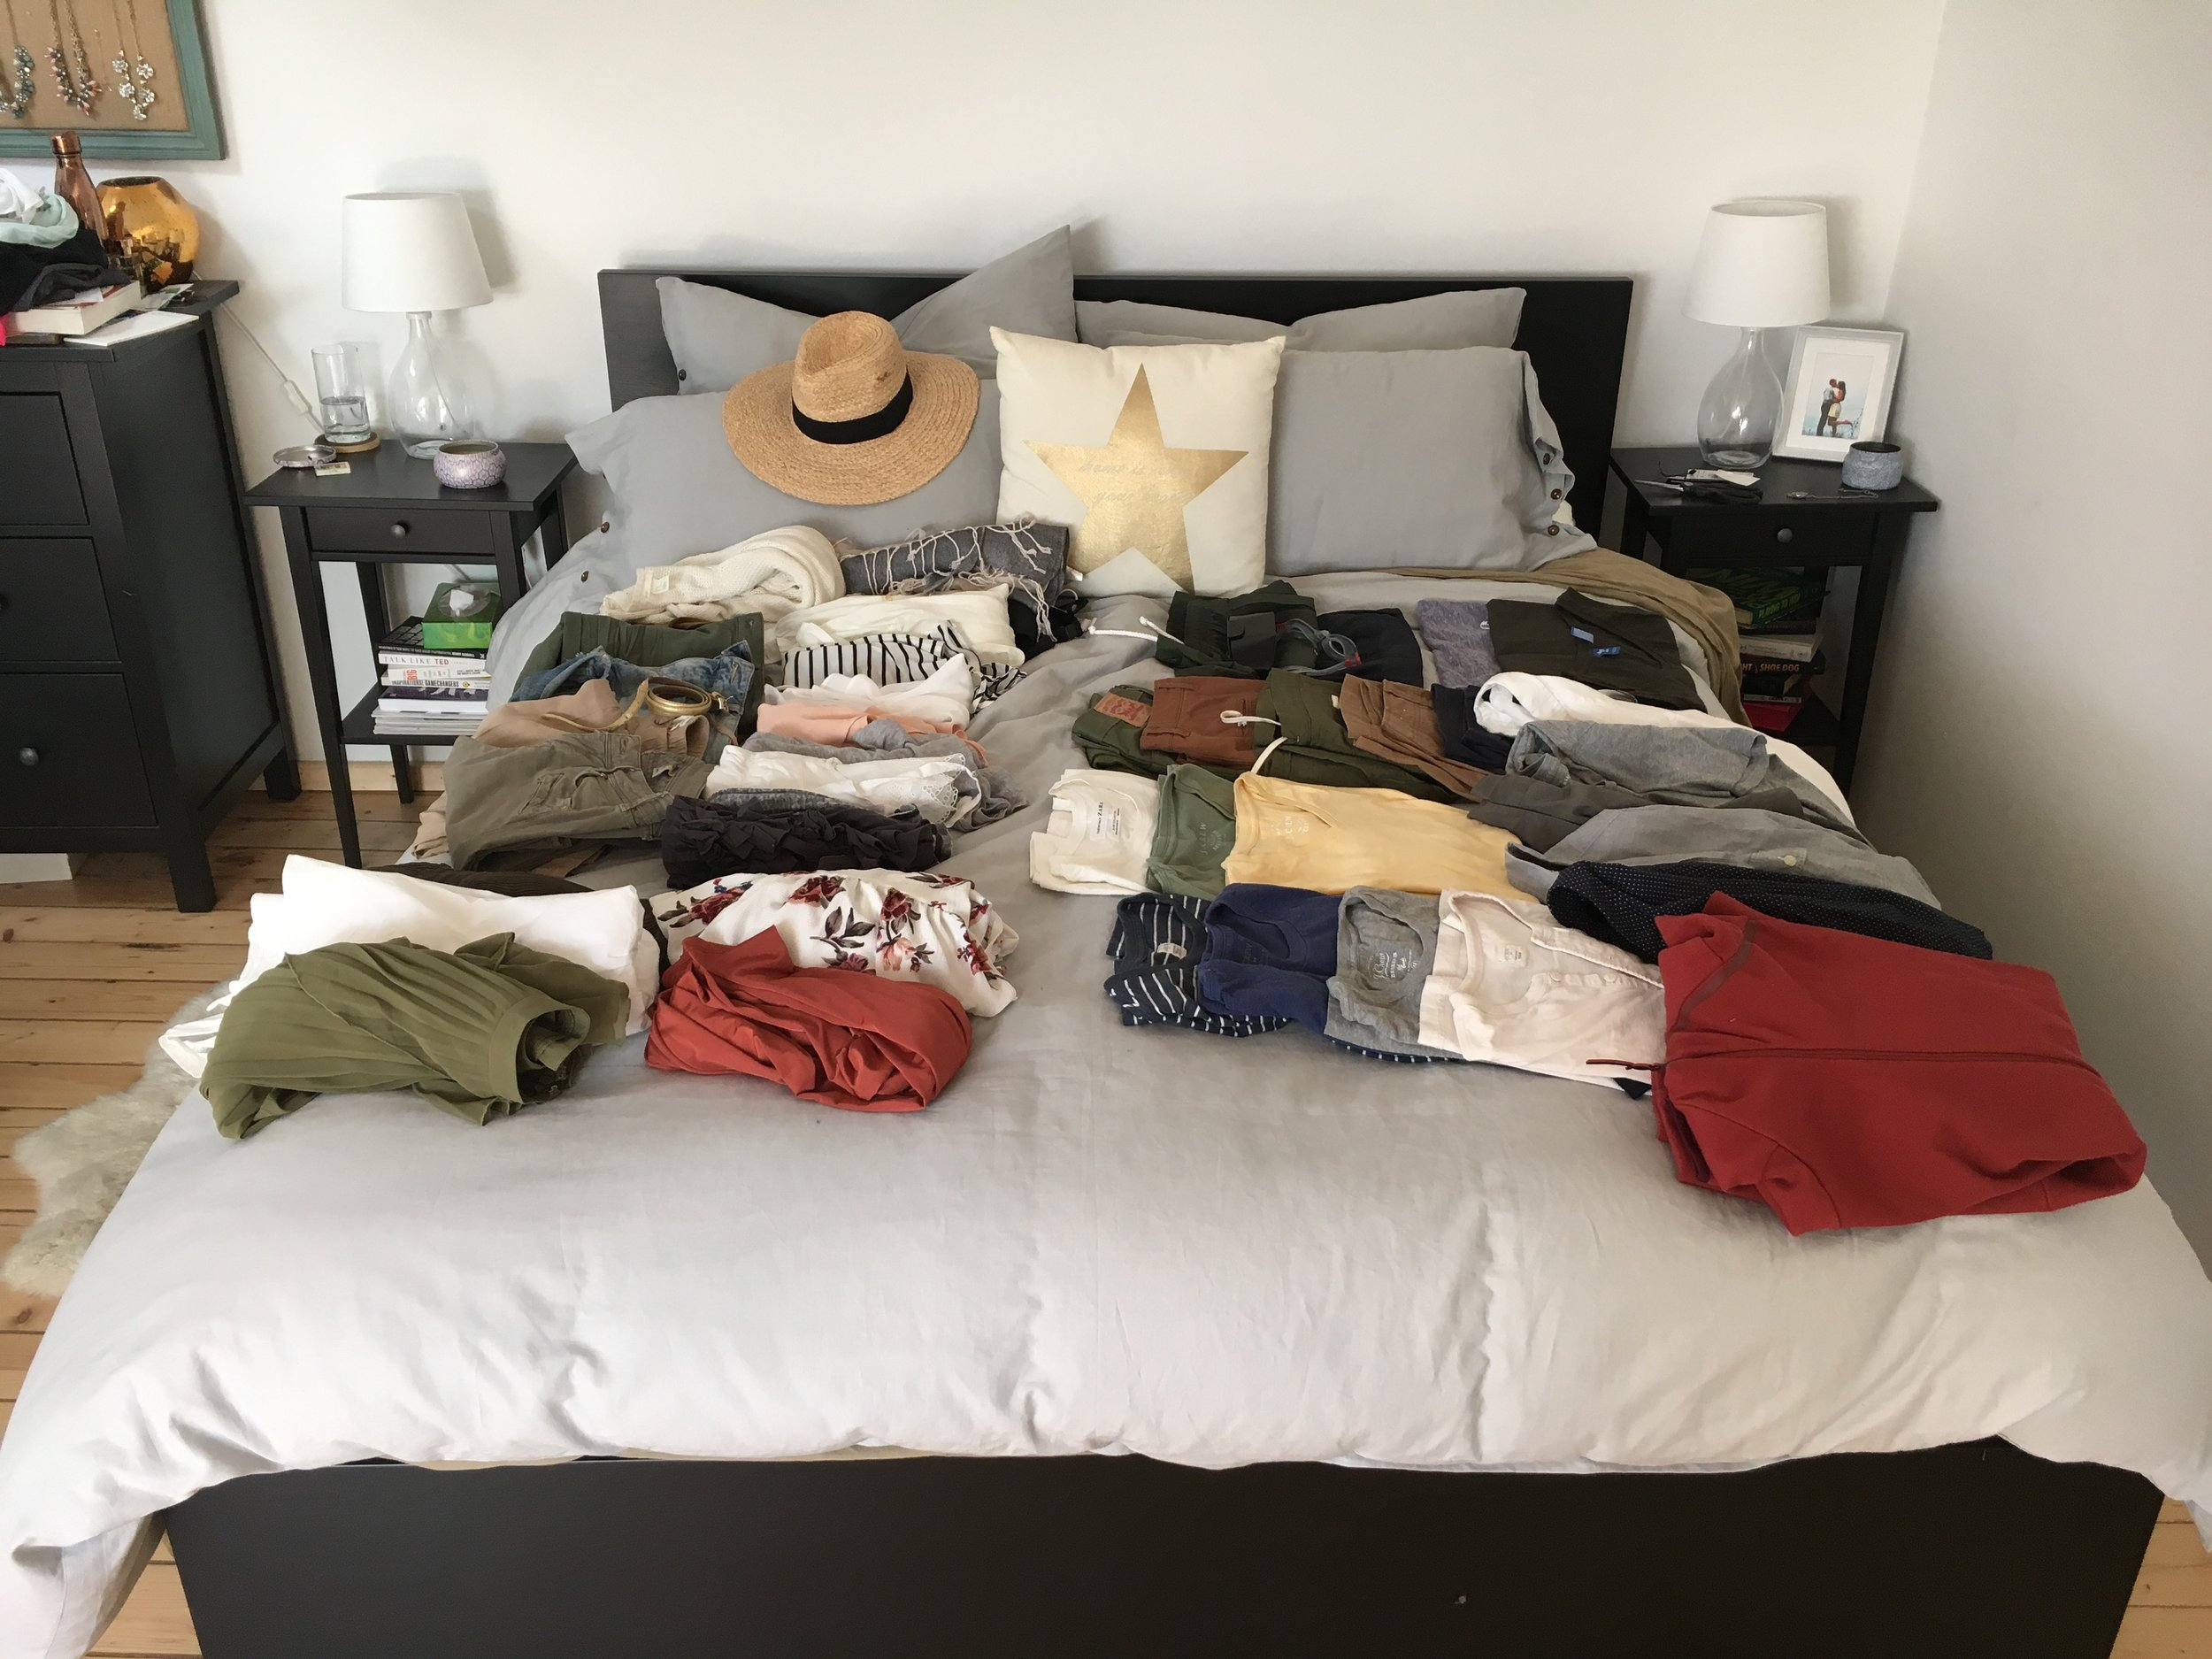 Does anyone else take over the entire bed packing?